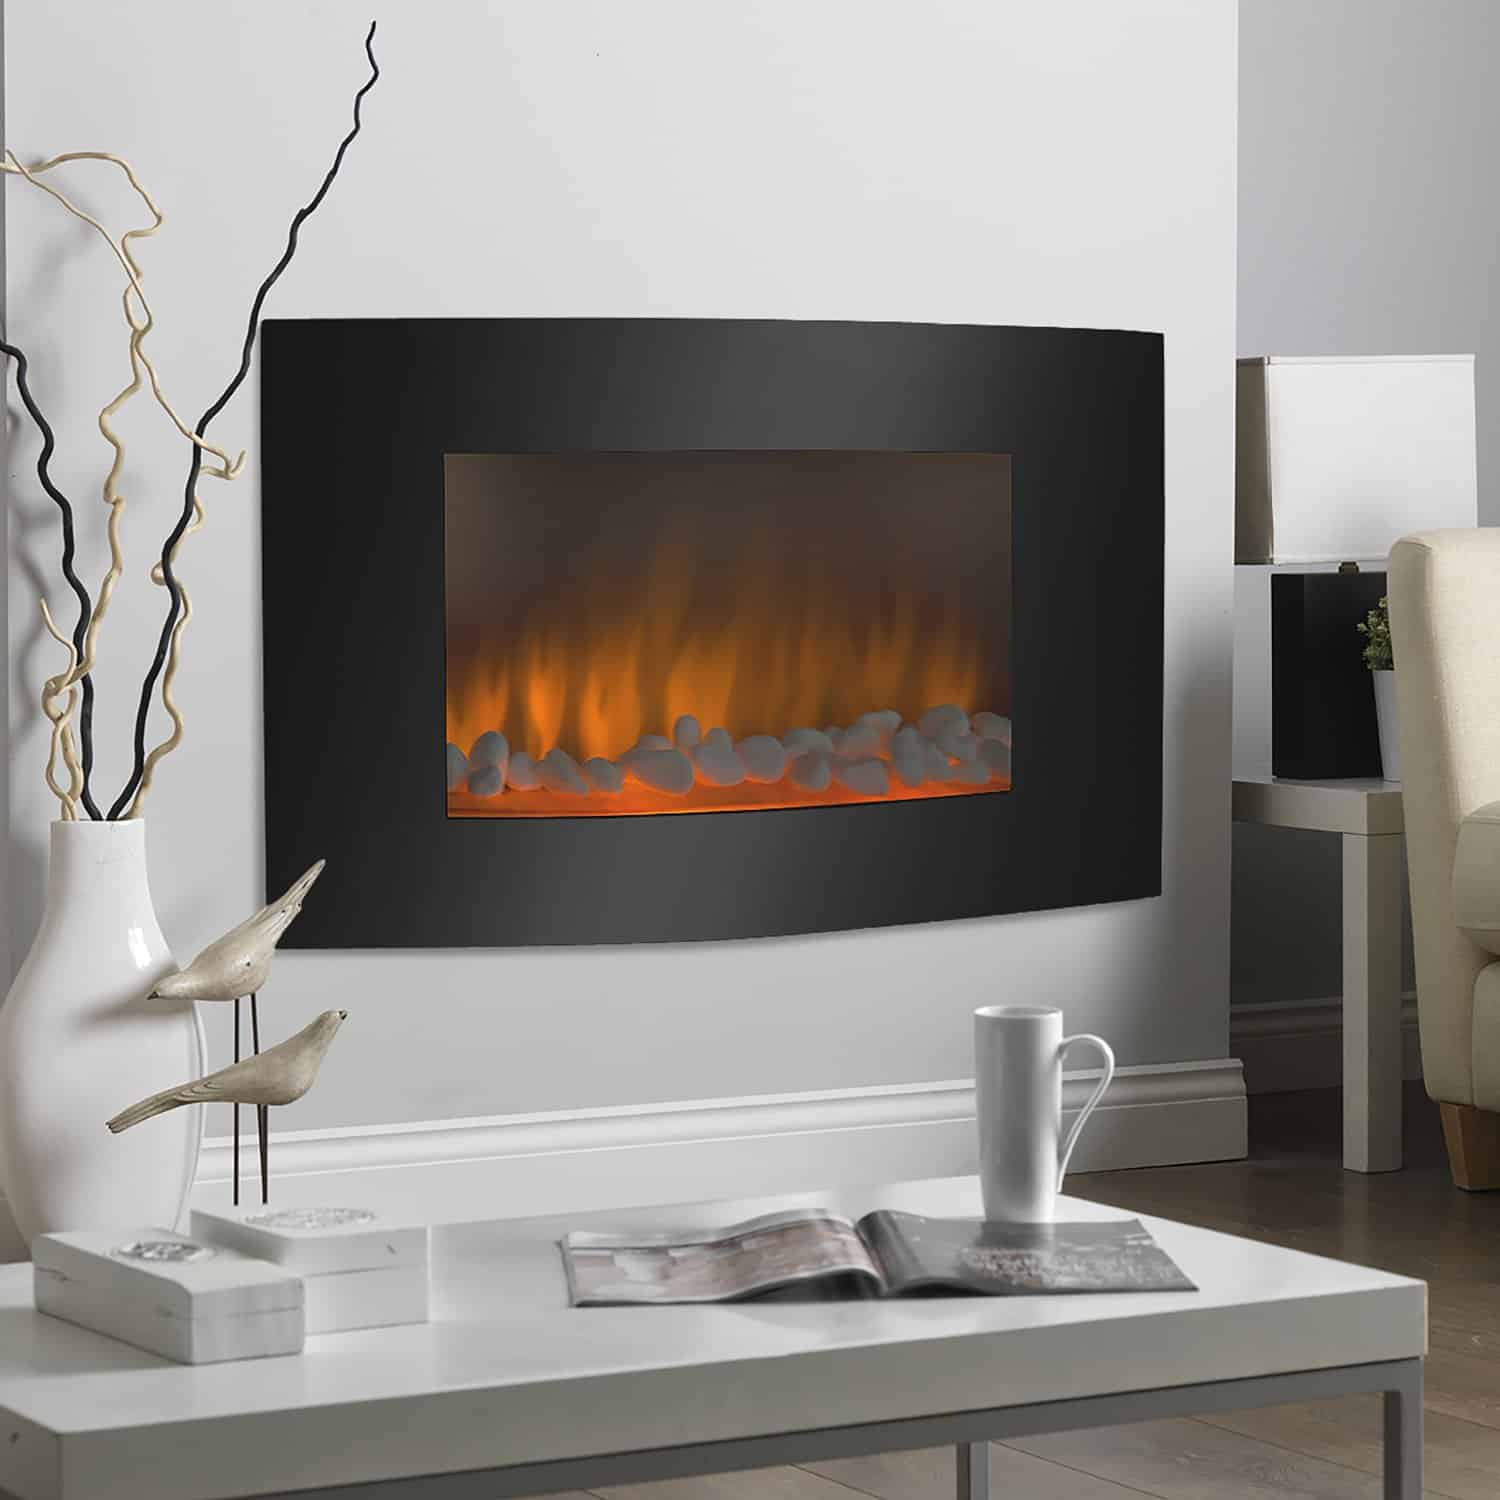 Wall Mount Fireplaces Pros Cons Modern Electric Fireplaces Vs Ethanol Fireplace